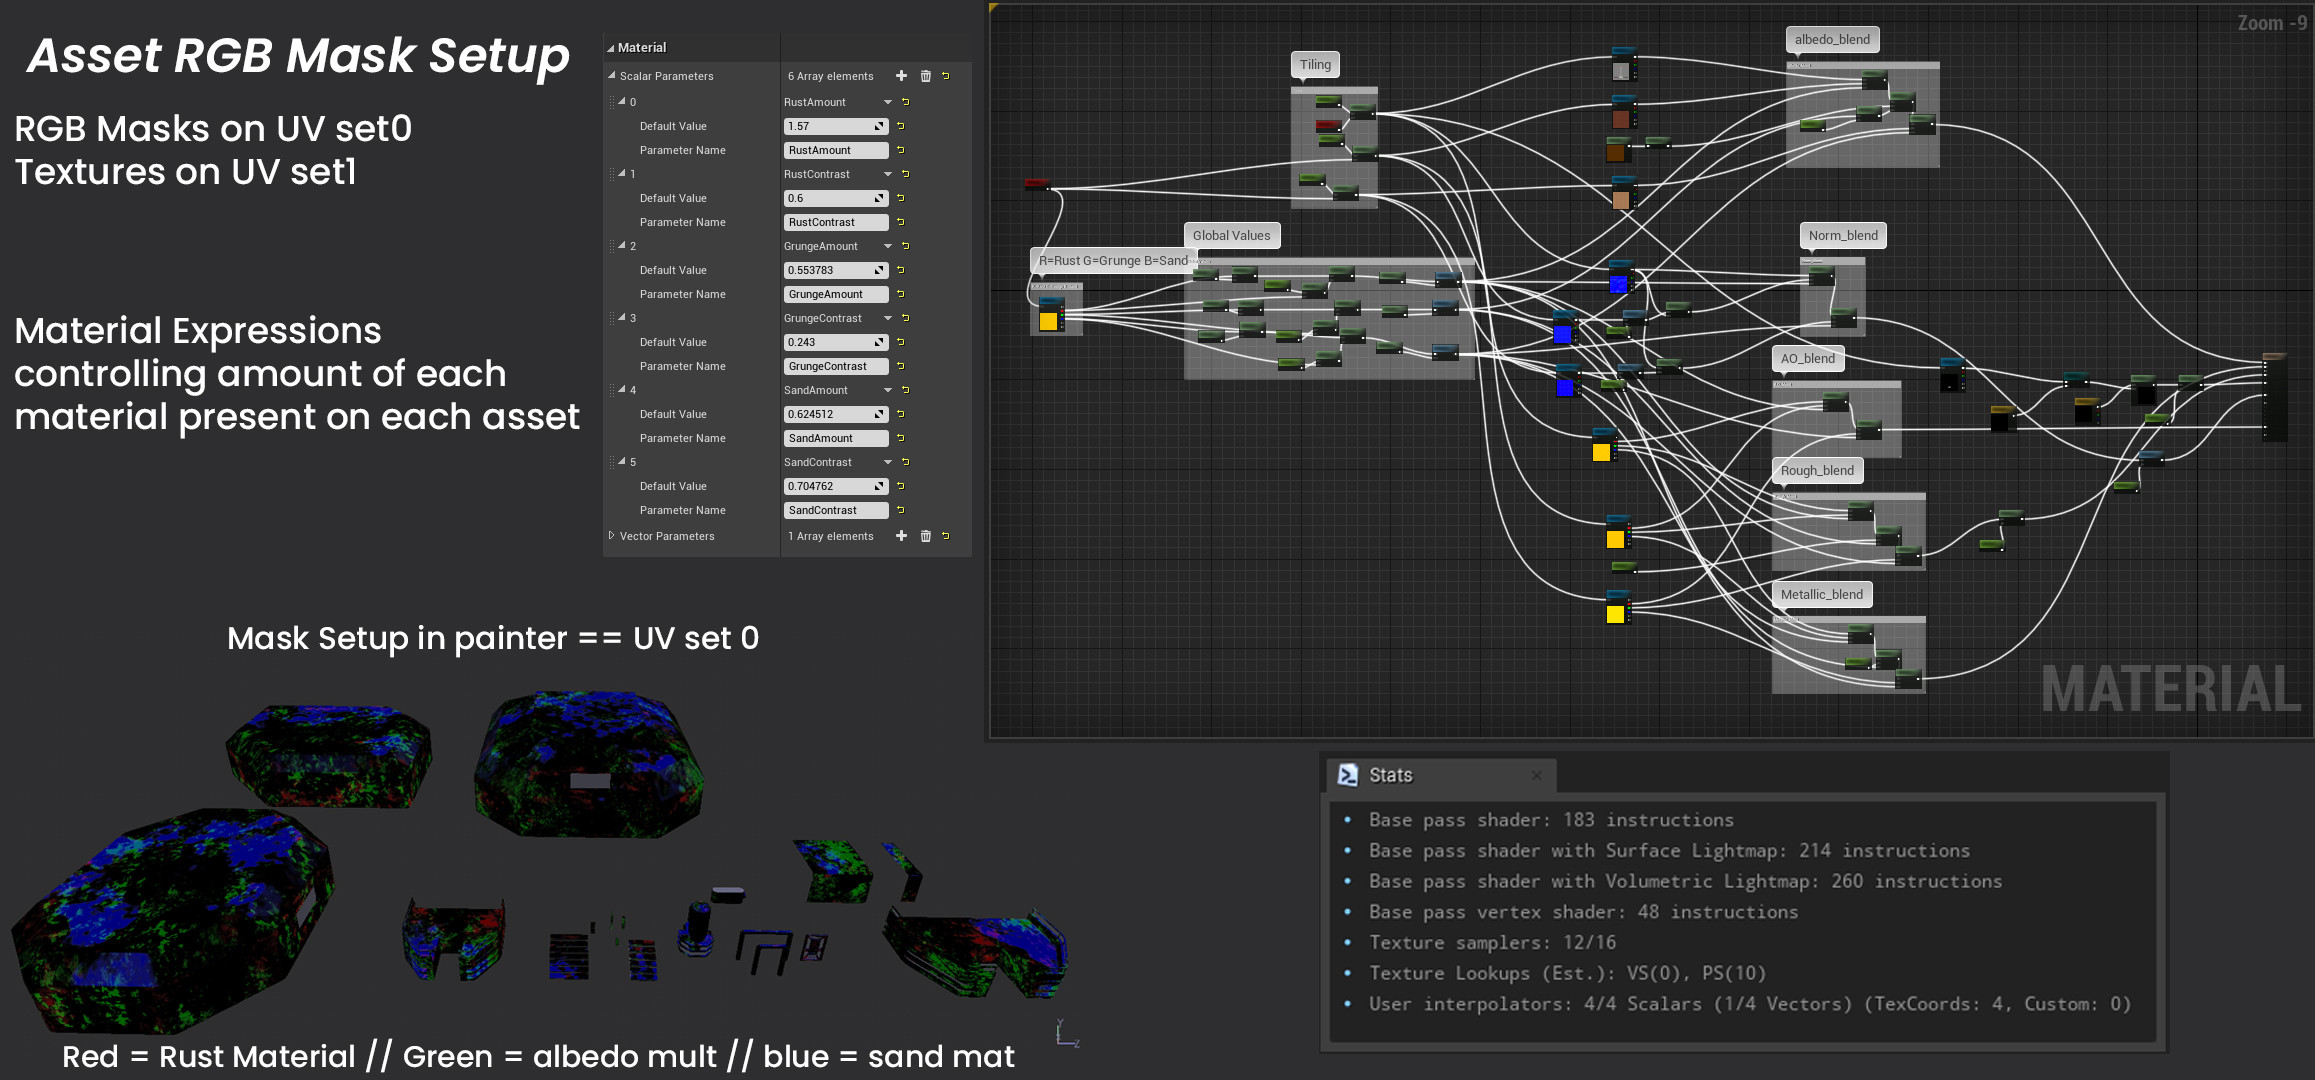 Texture UVs on set 1 to enable the use of tilables and trims, while keeping the material slots to 1